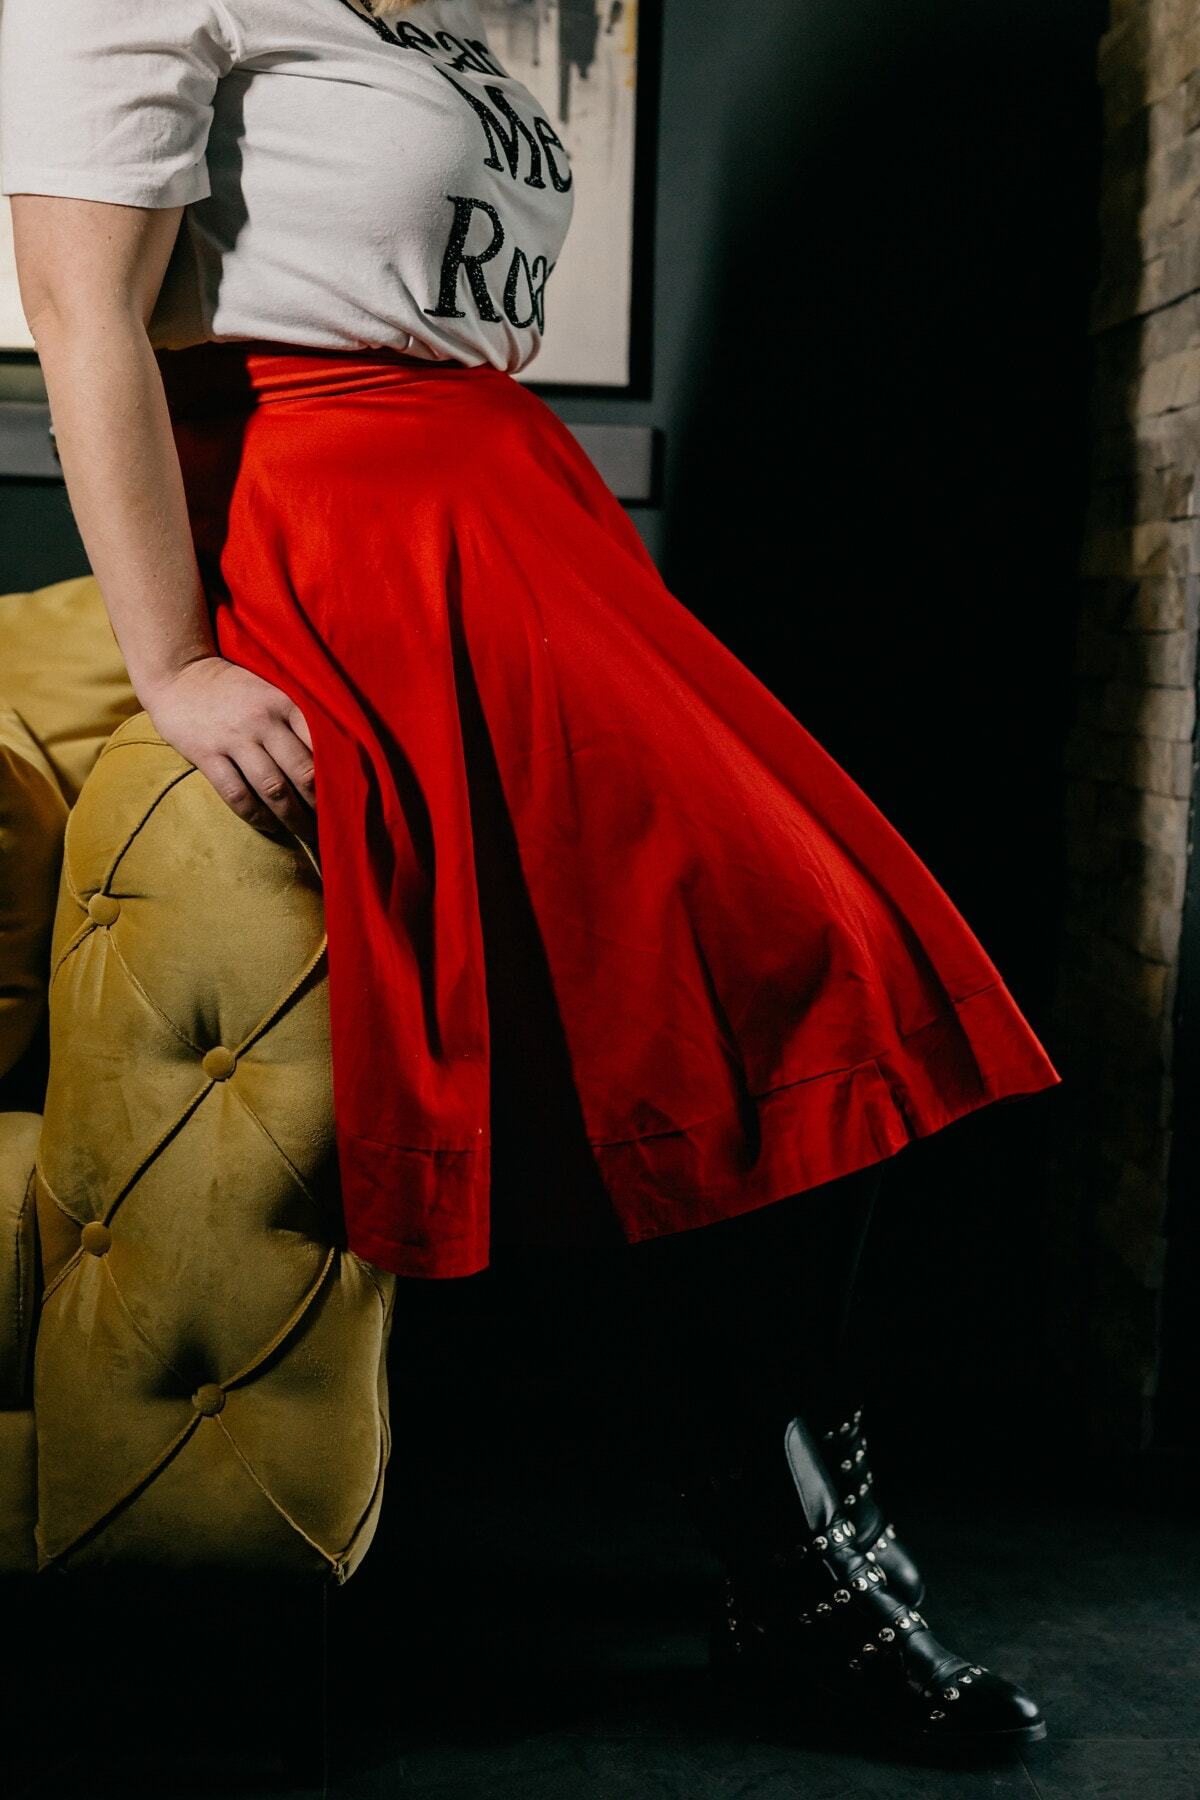 skirt, red, body, slim, posing, young woman, trendy, outfit, black, shirt